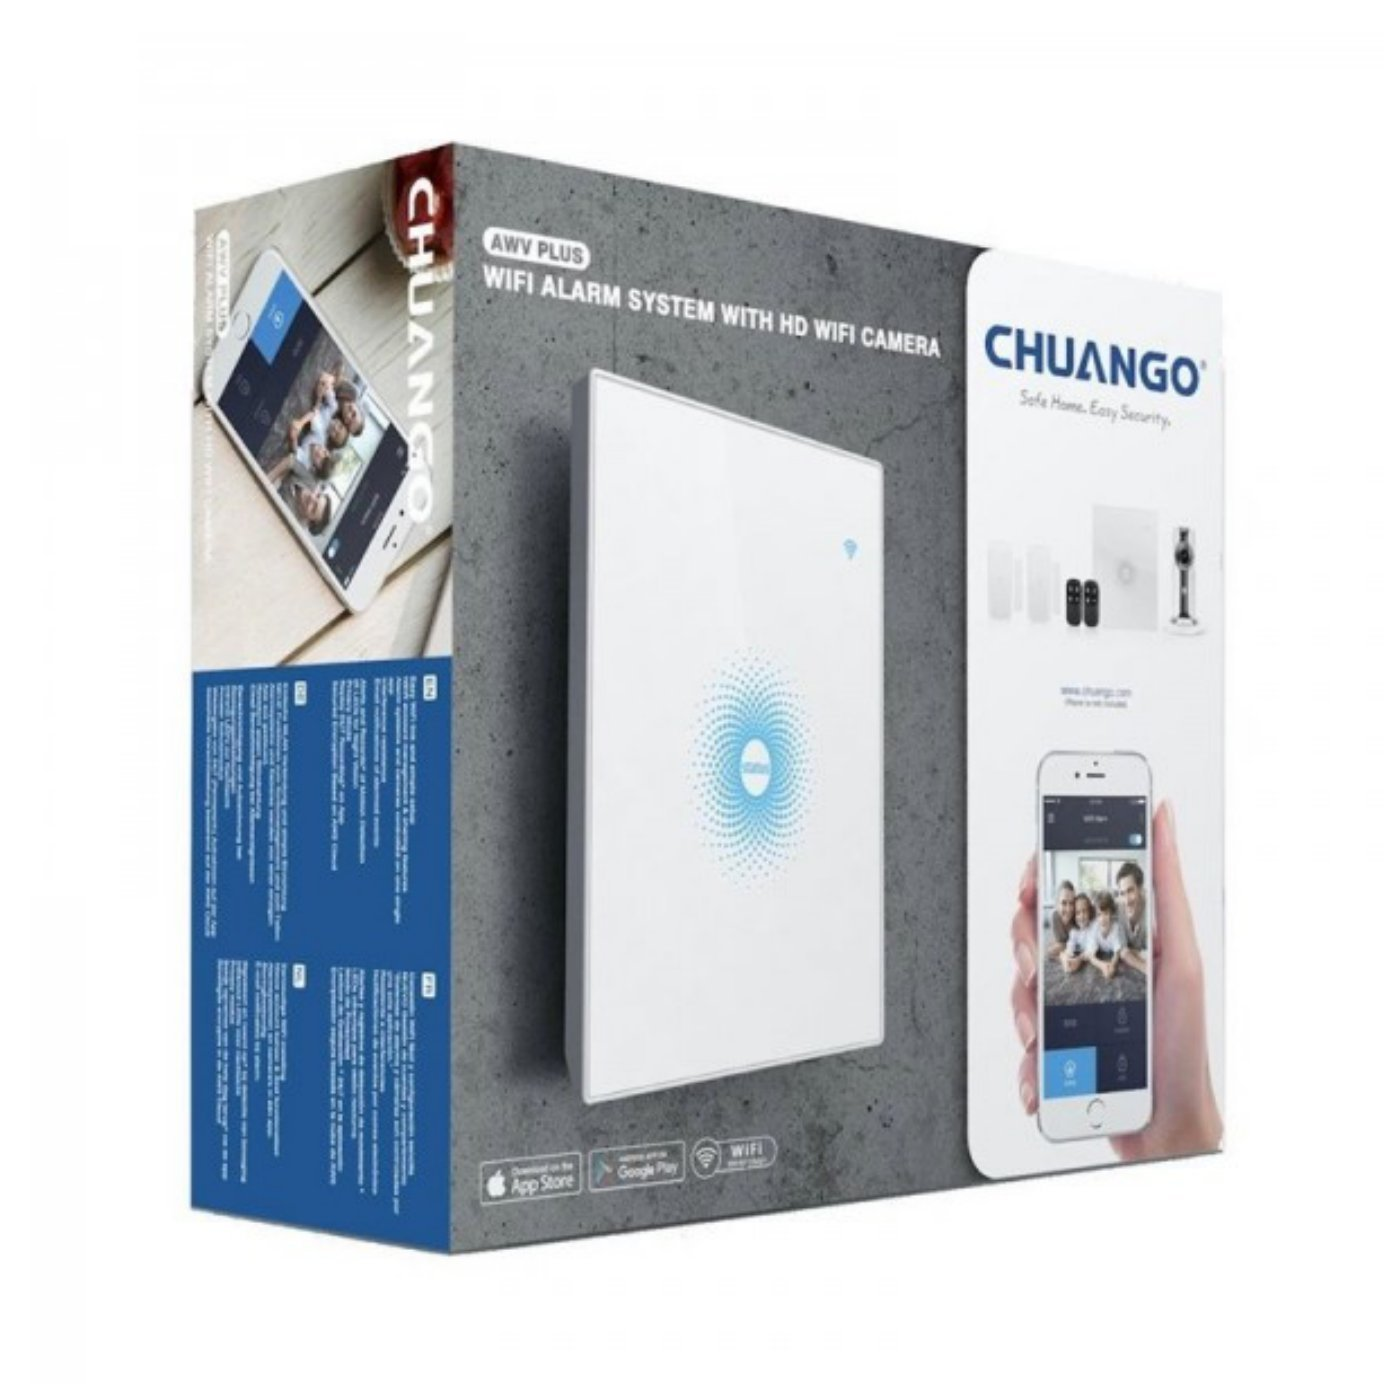 Sistema de Alarma y Smart Home WiFi: Amazon.es: Electrónica